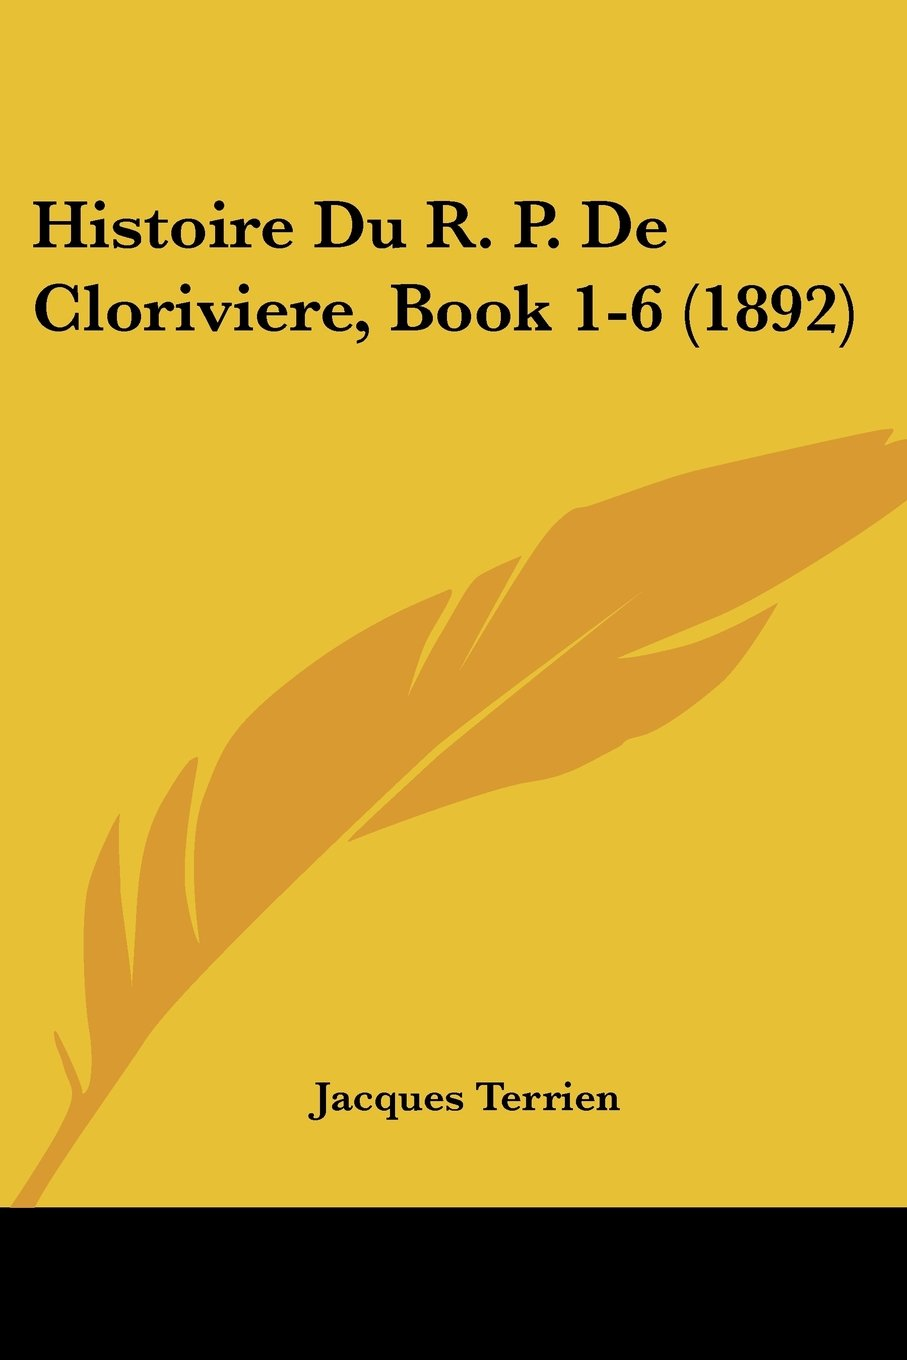 Download Histoire Du R. P. De Cloriviere, Book 1-6 (1892) (French Edition) pdf